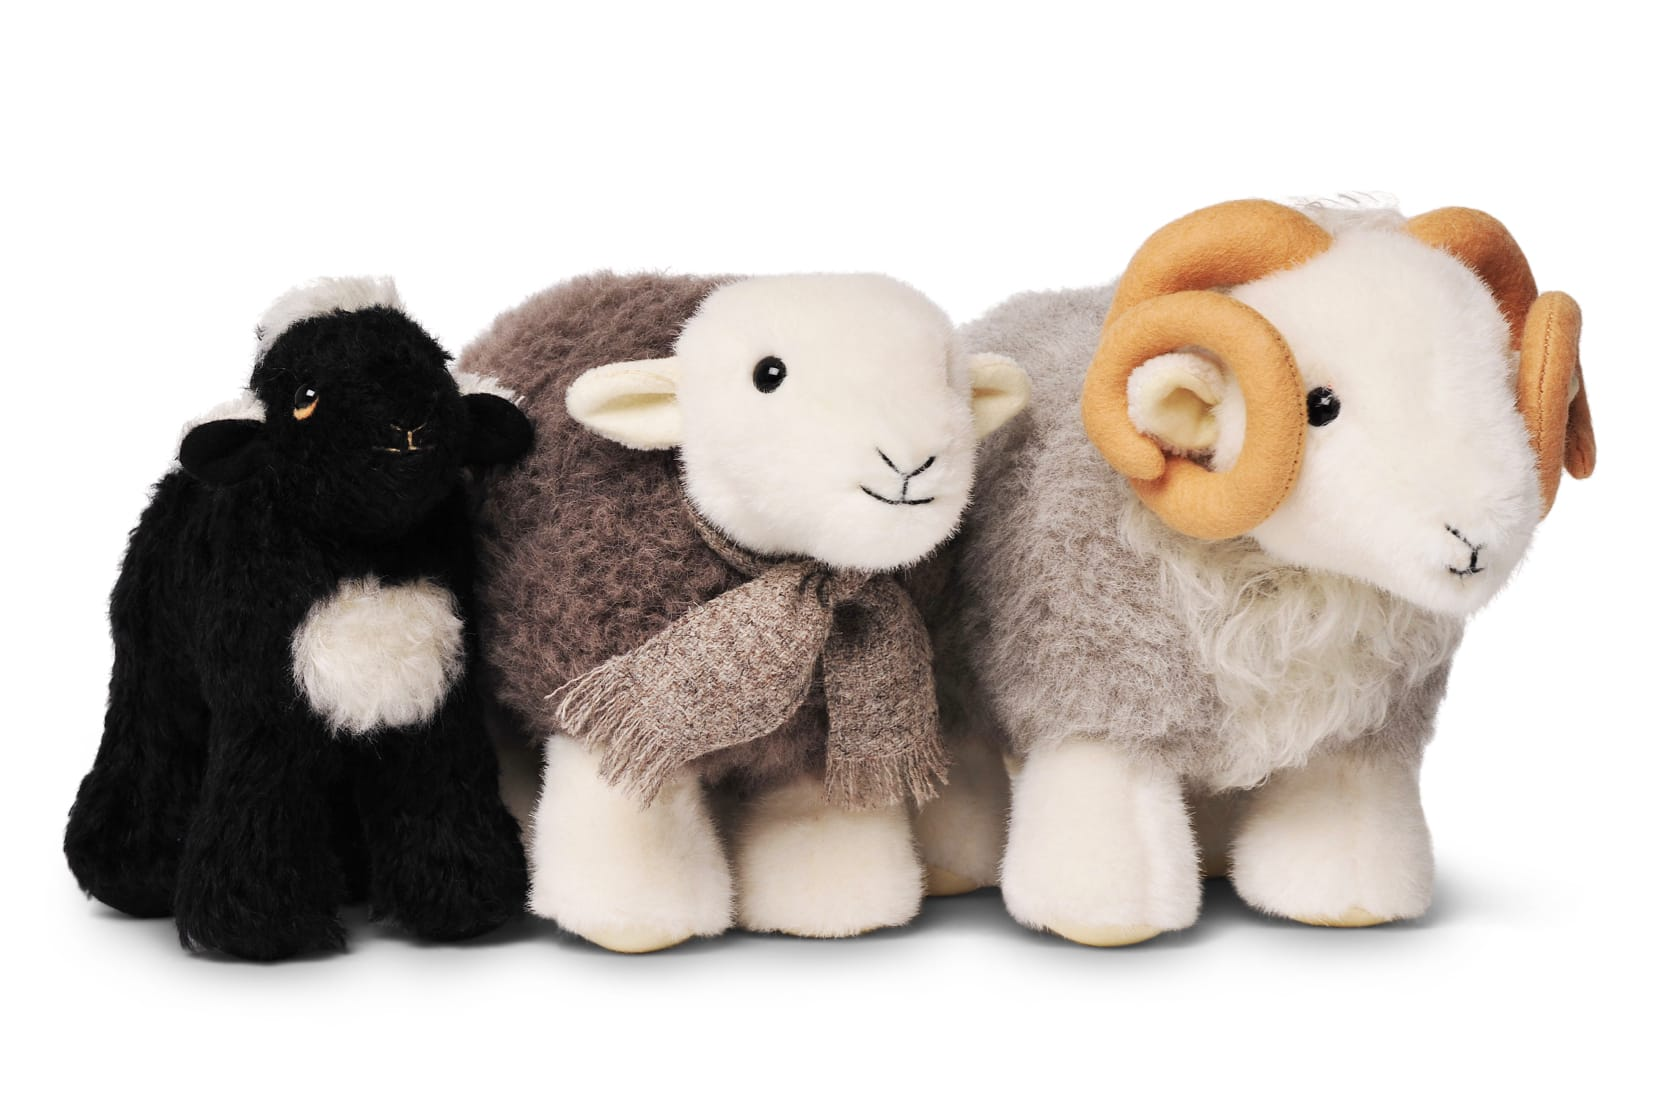 The original three My Herdys: original My Herdy, My Herdy Lamb, and My Herdy Tup